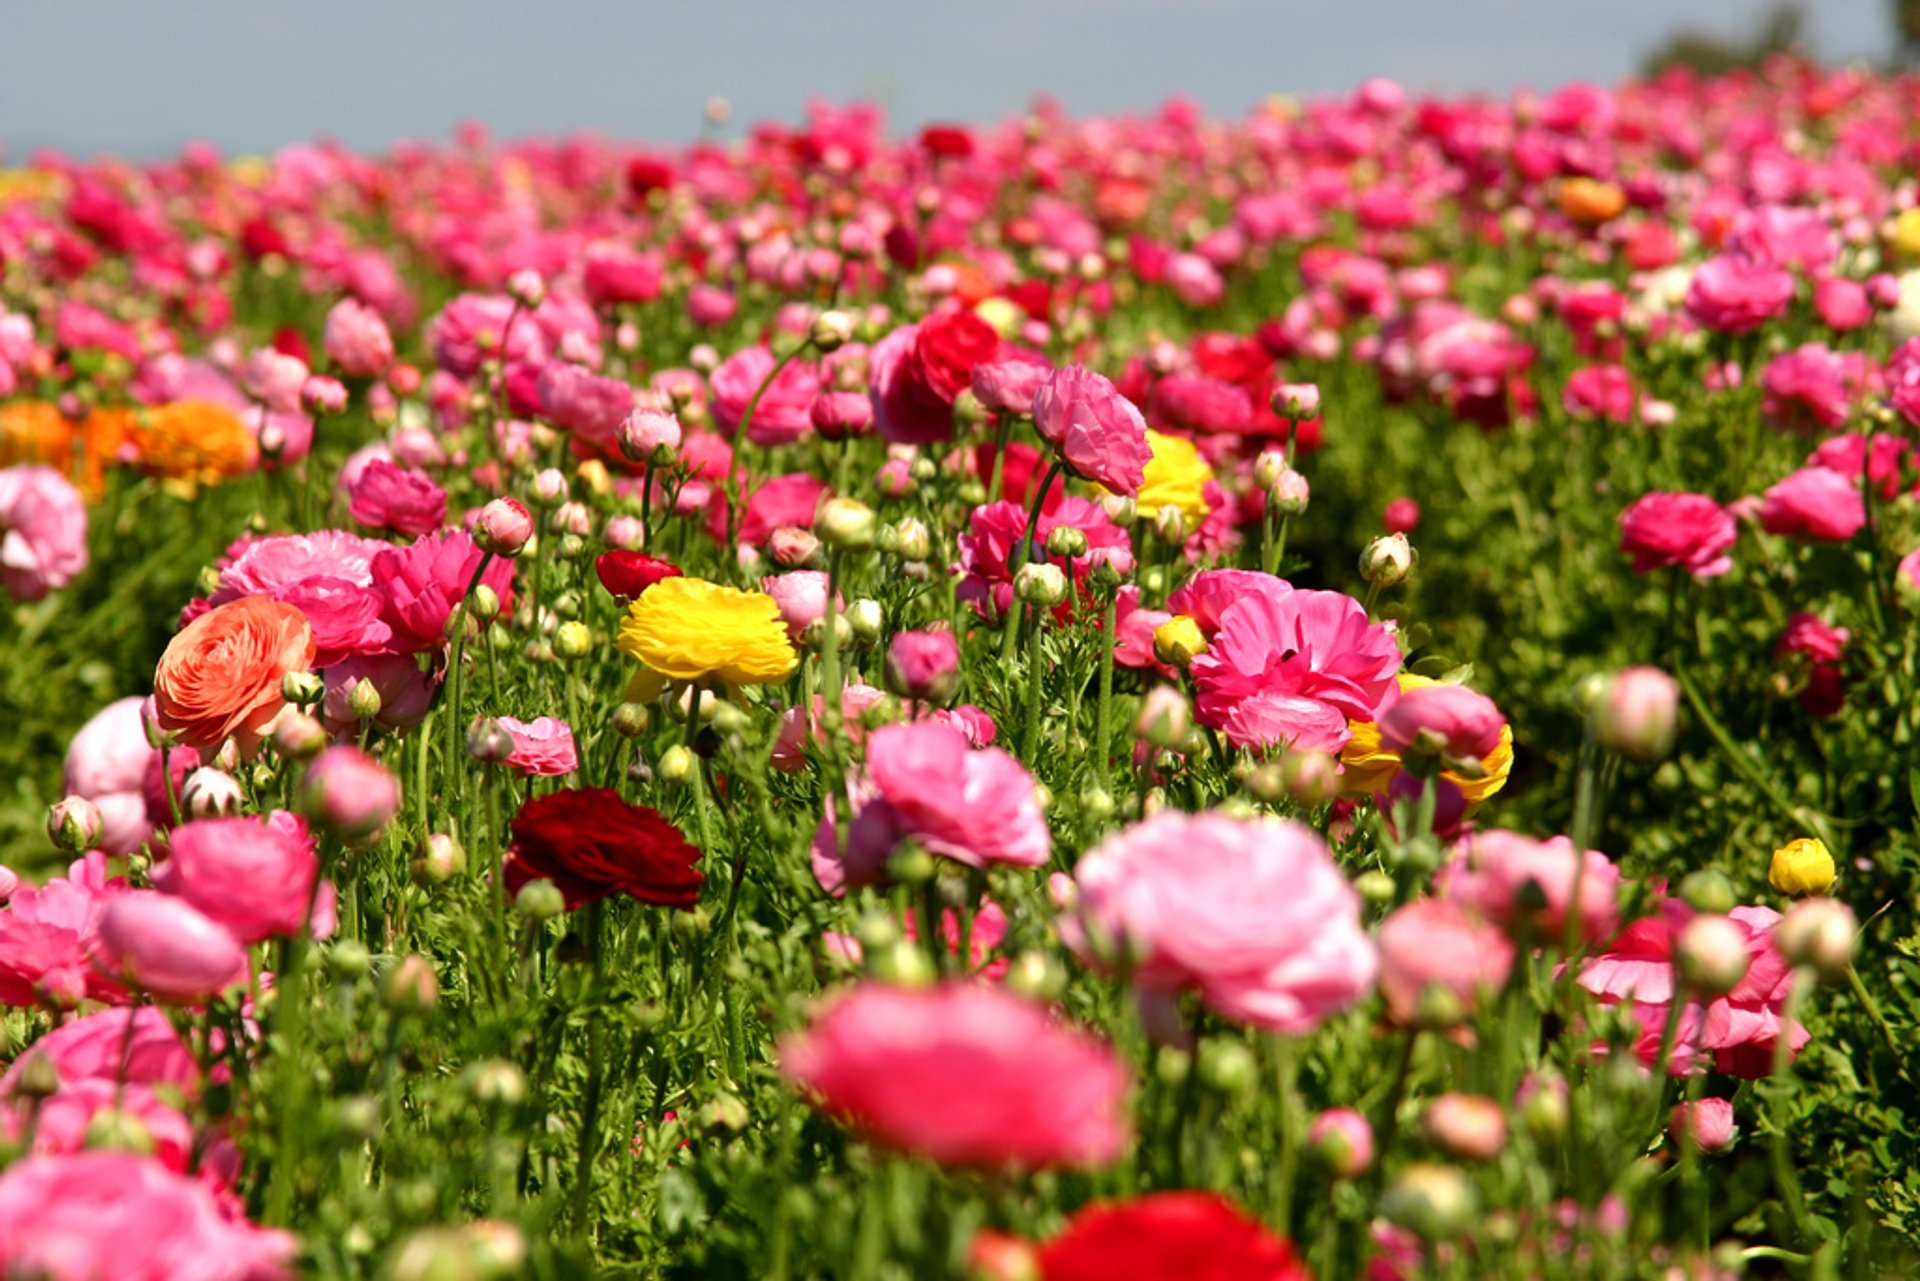 The Flower Fields at Carlsbad Ranch in San Diego 2020 - Best Time